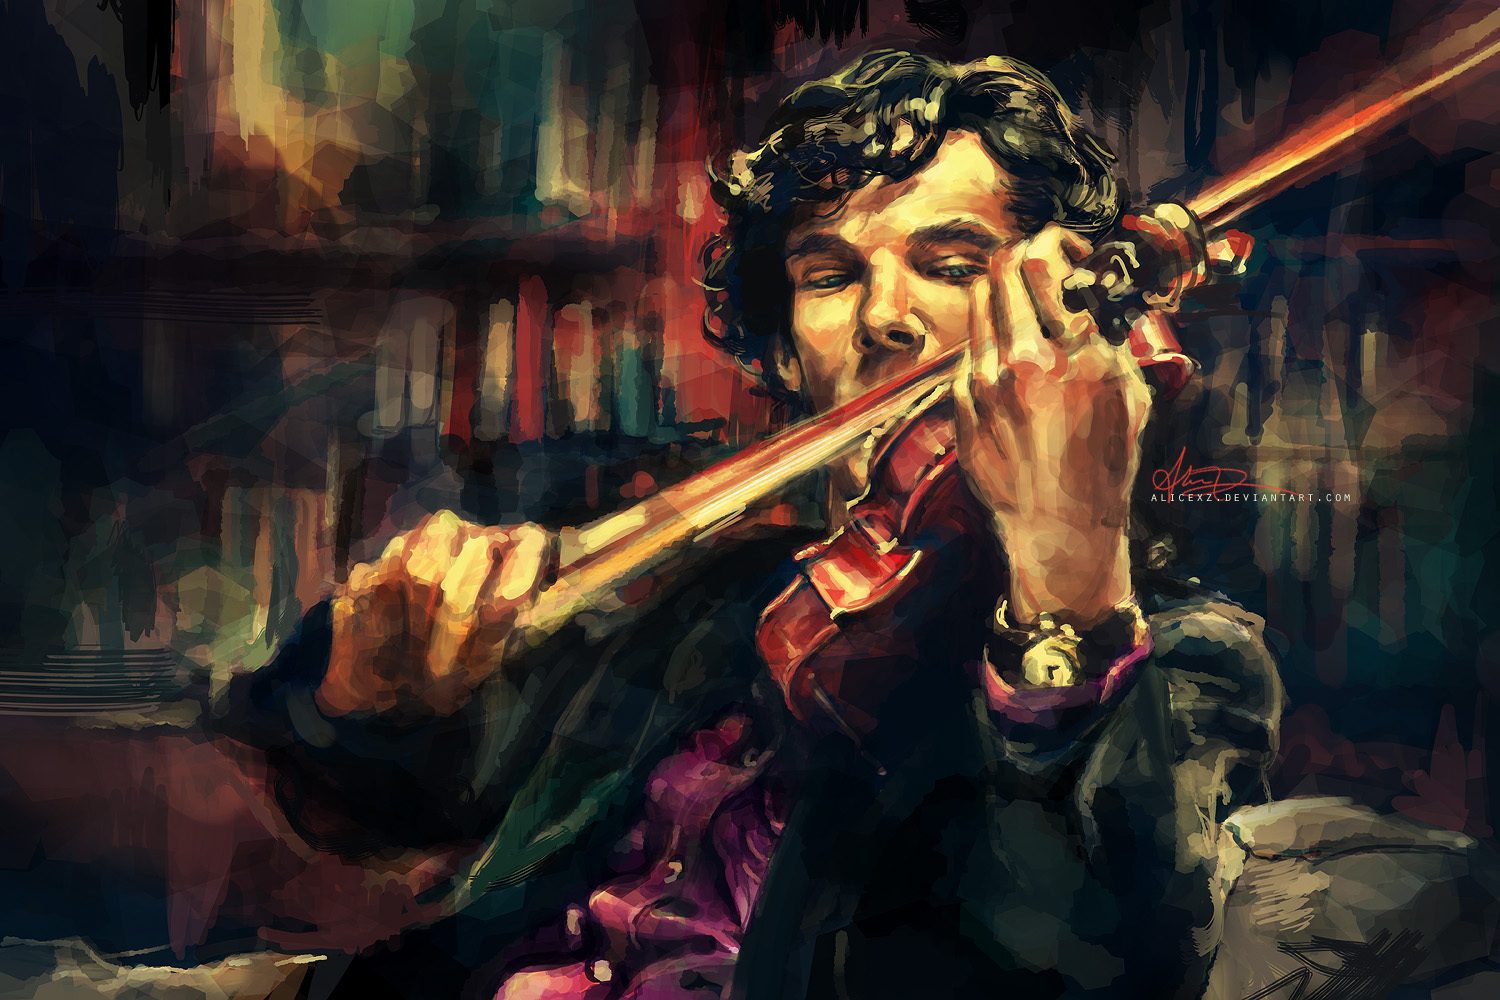 http://images5.fanpop.com/image/photos/25900000/Sherlock-sherlock-on-bbc-one-25900650-1500-1000.jpg